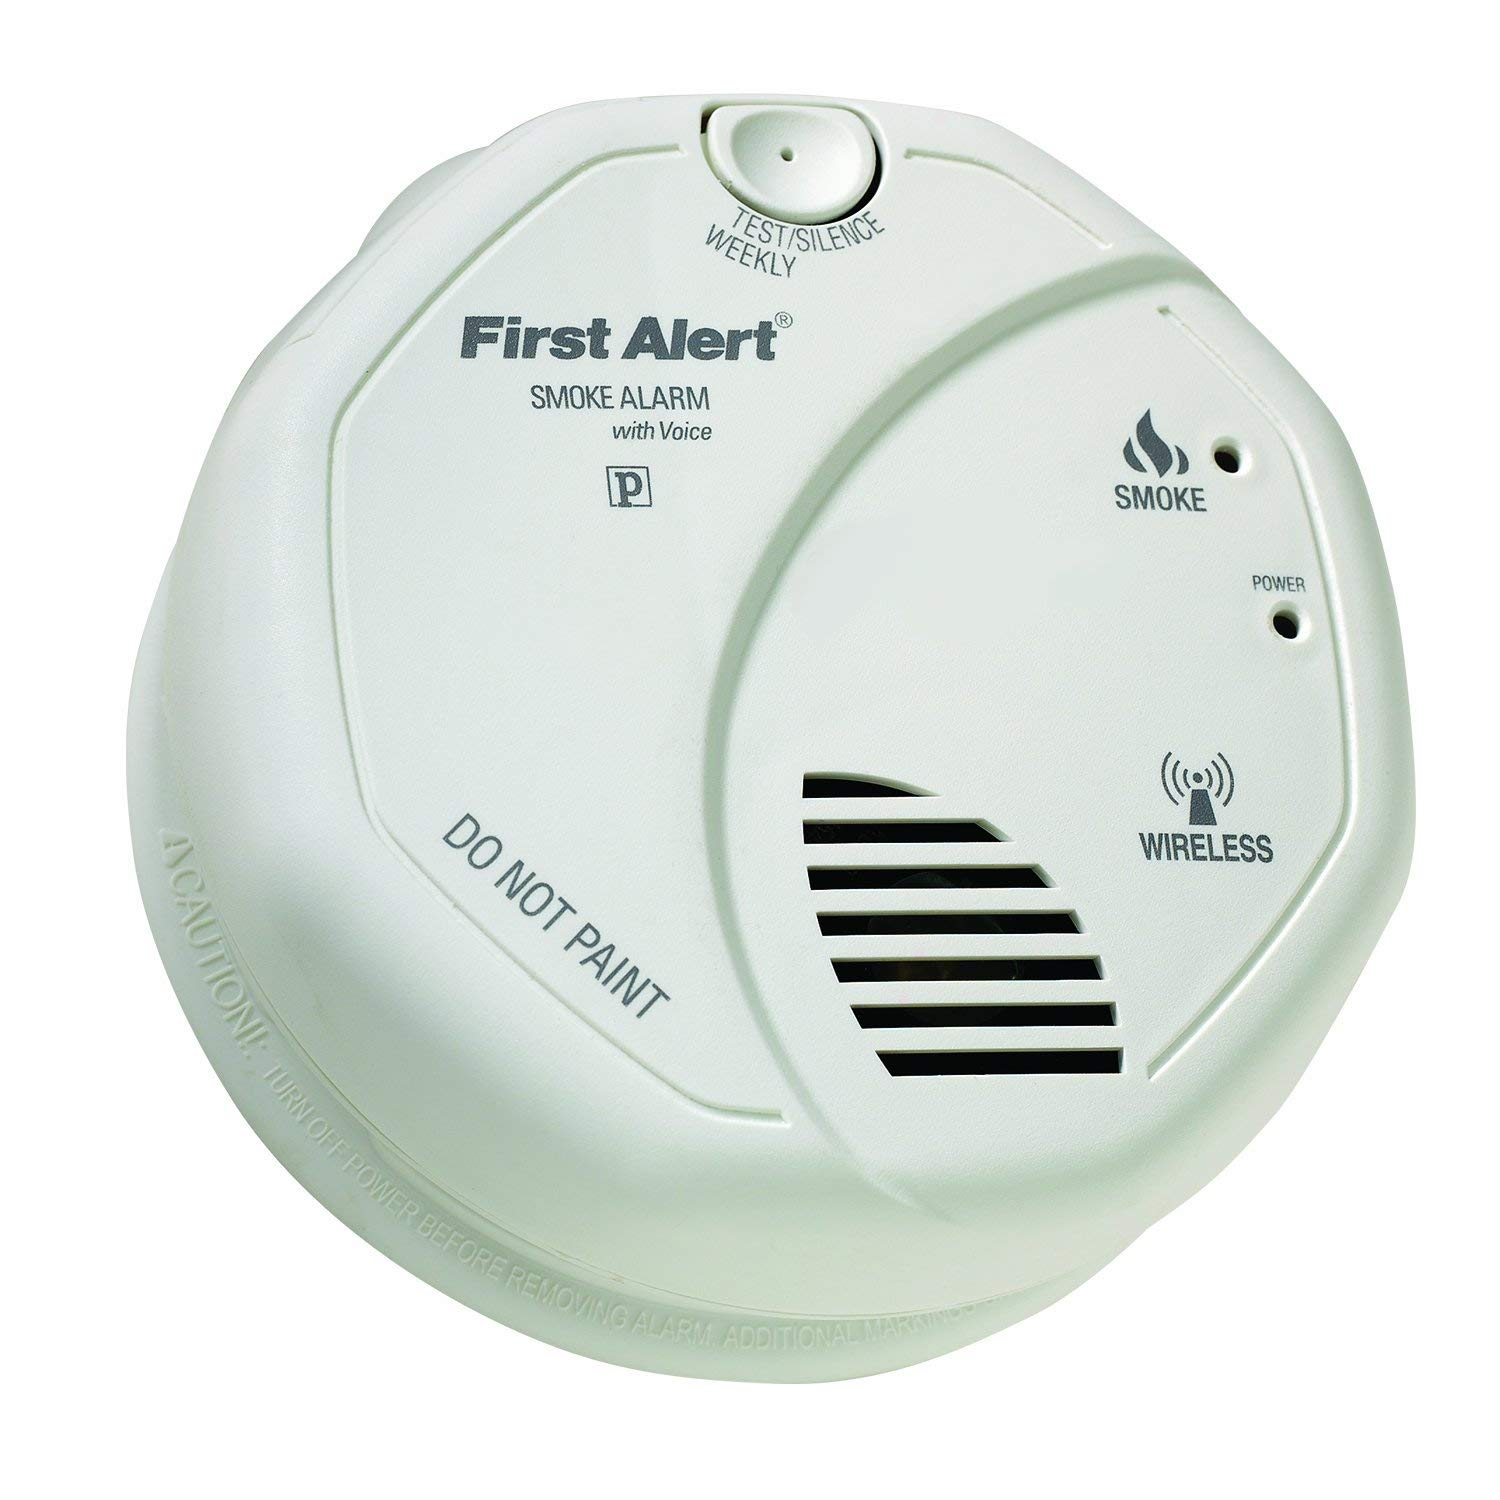 First Alert OLSMOKEV SmartBridge Wireless Interconnected Photoelectric Smoke Alarm with Voice and Location